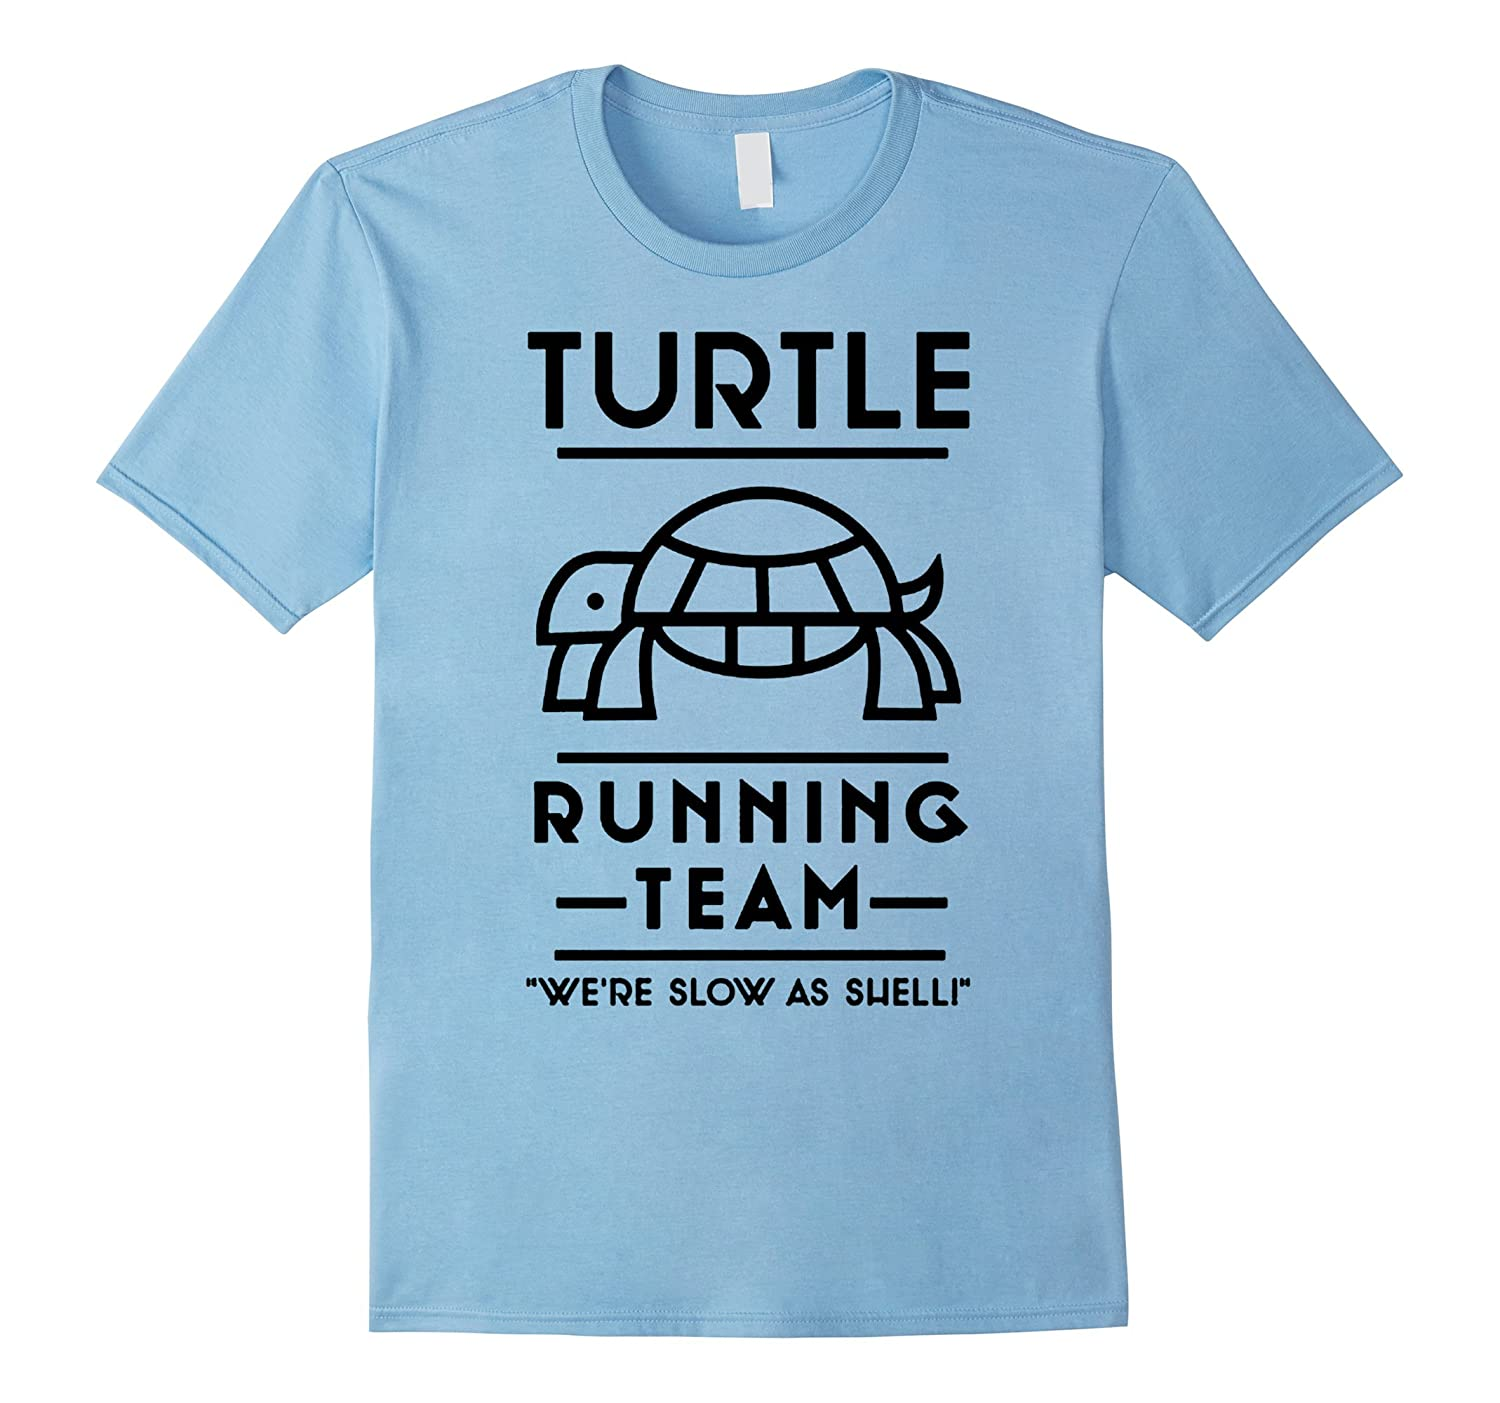 TURTLE RUNNING TEAM WERE SLOW AS SHELL RUNNER T SHIRTS-Vaci